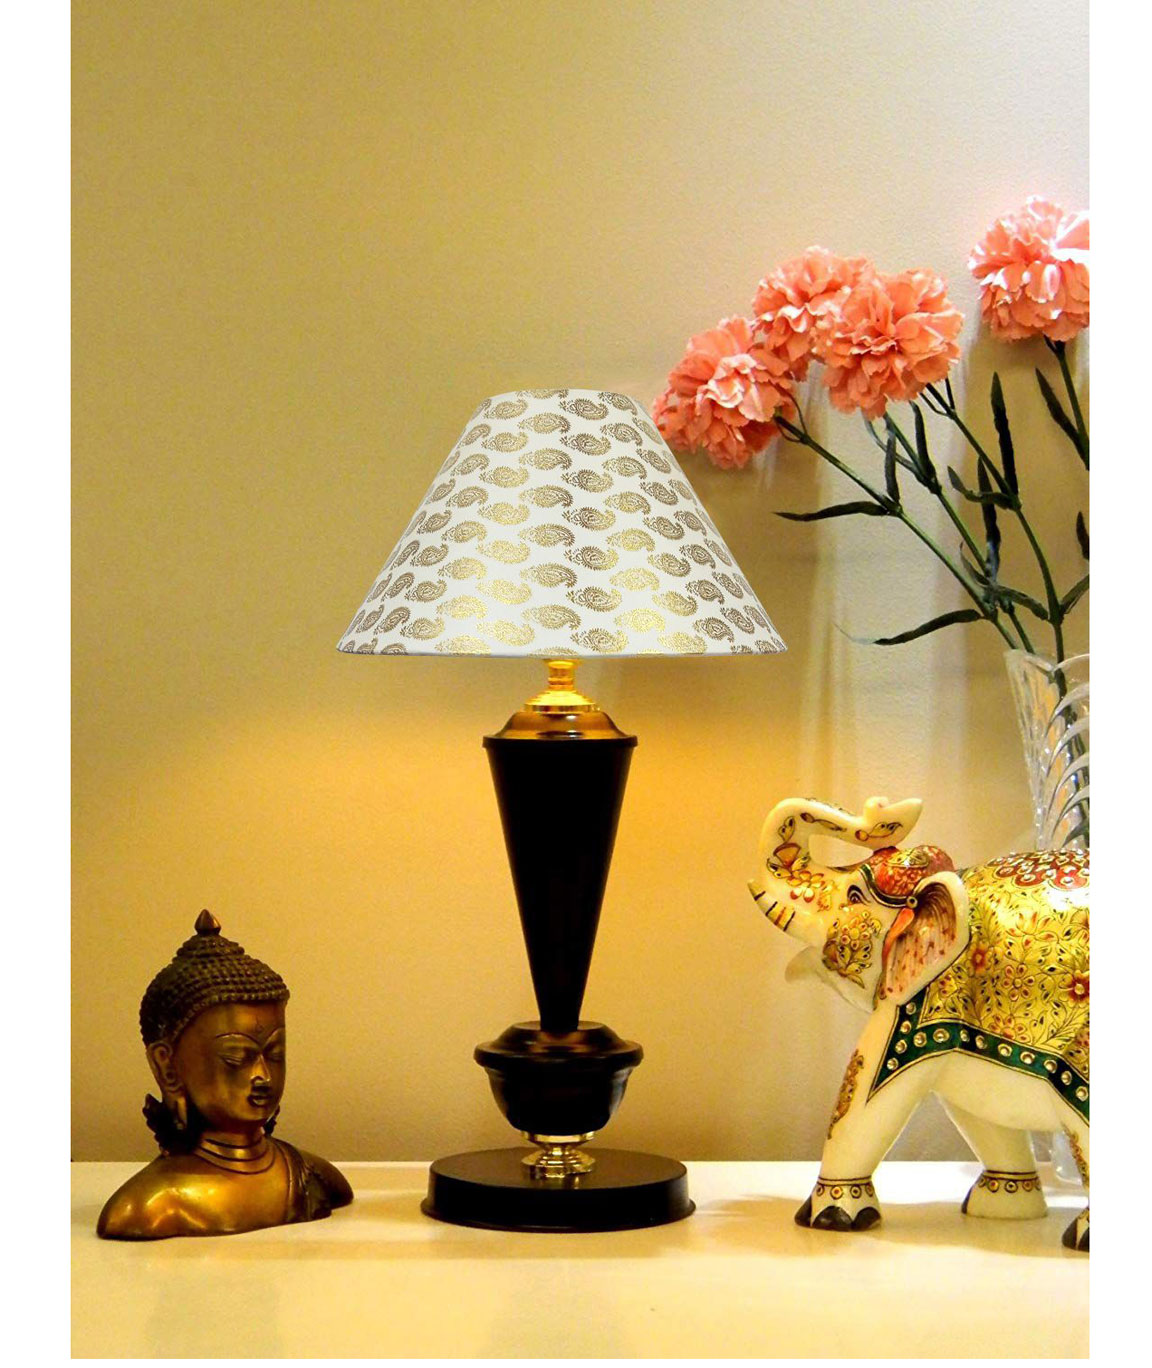 RDC Black with Golden Base Table Lamp with 10 Inches Round Cream Golden Designer Lamp Shade